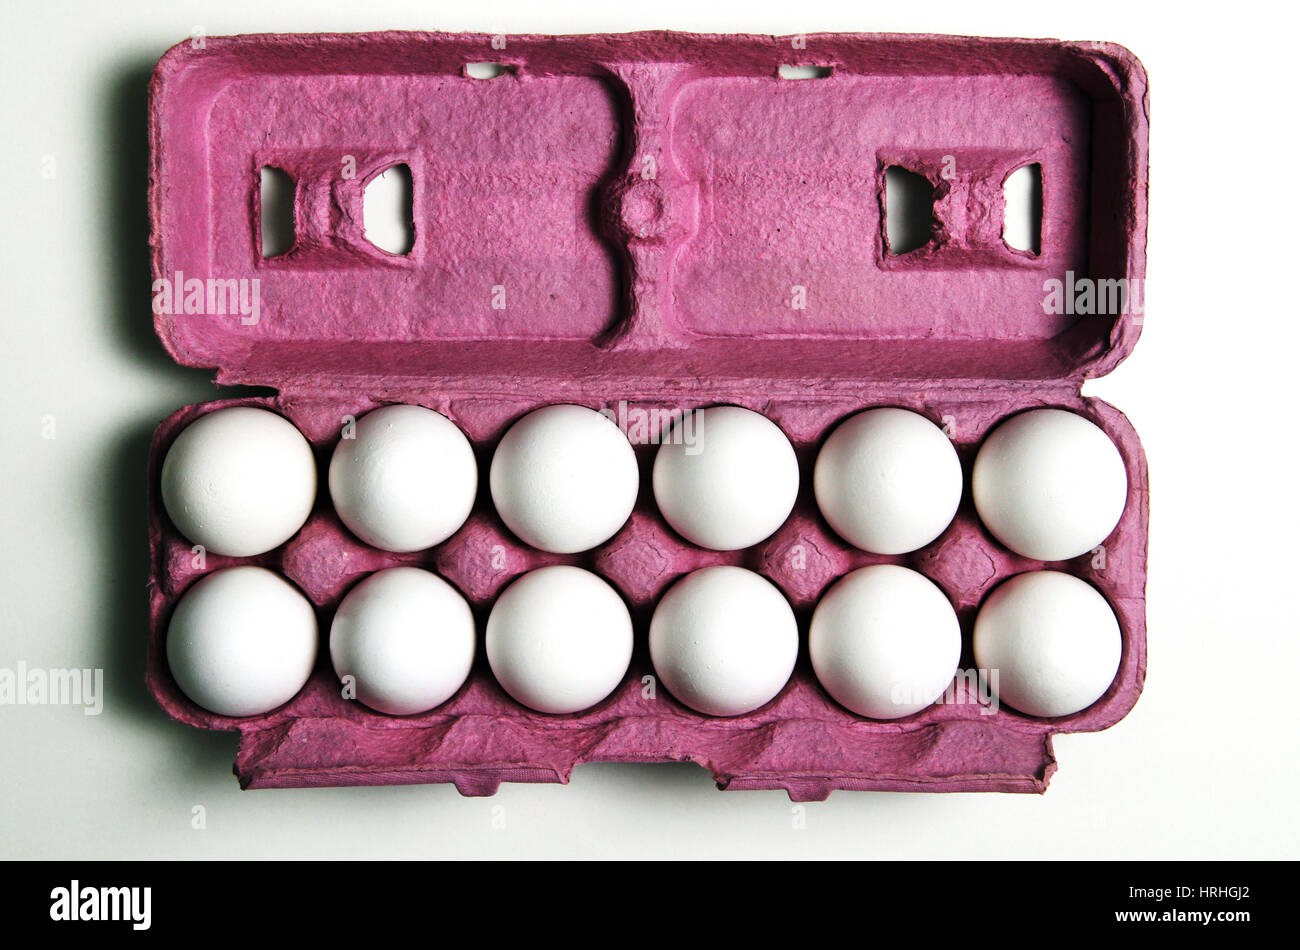 12 Eggs - Stock Image